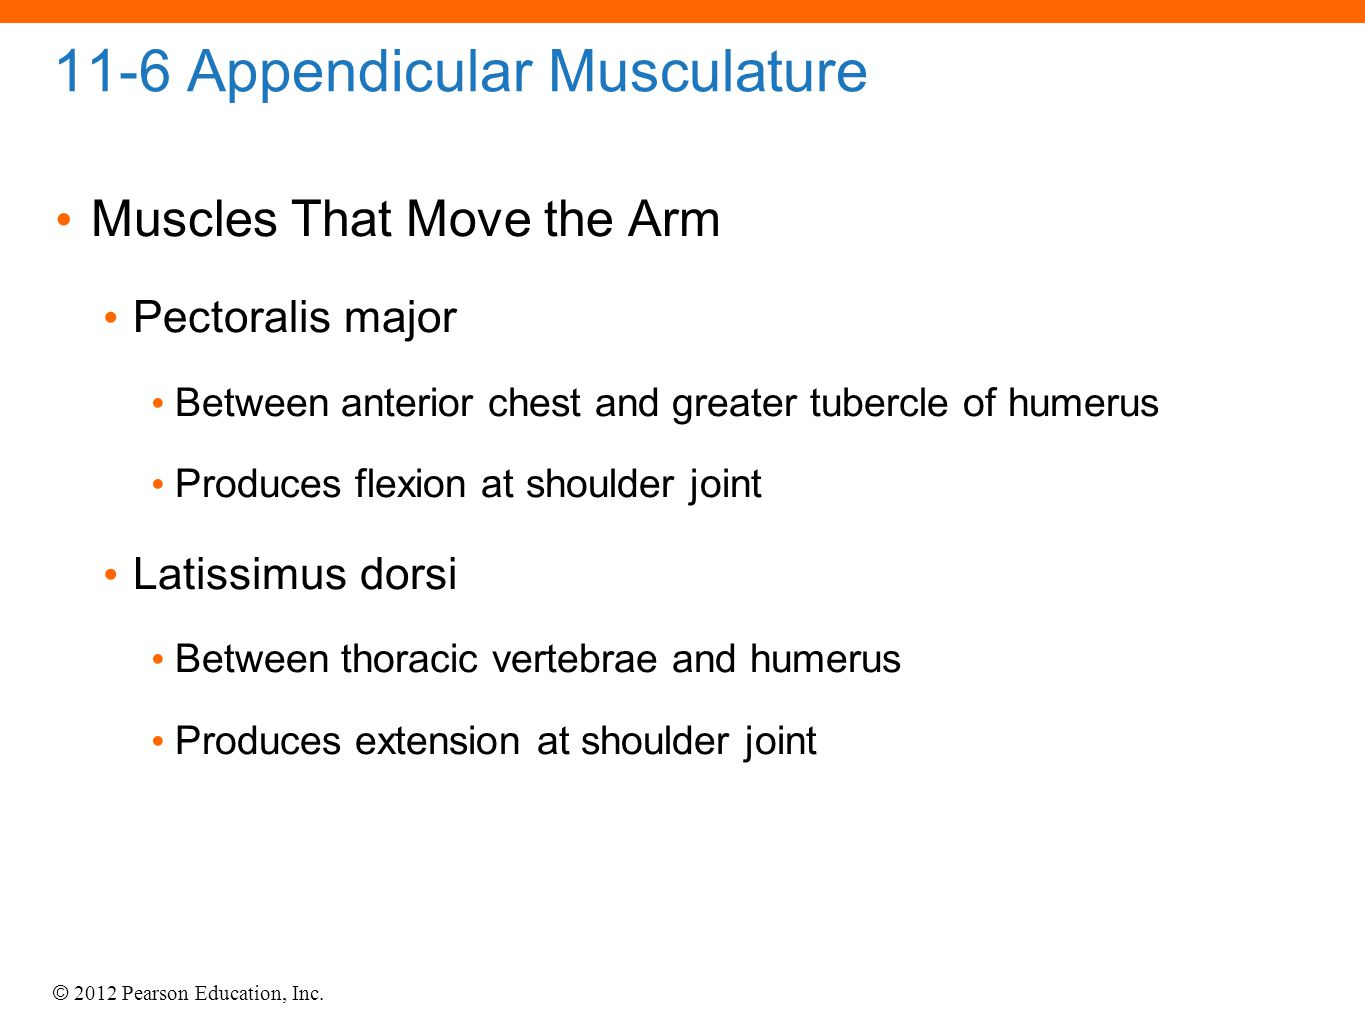 © 2012 Pearson Education, Inc. 11-6 Appendicular Musculature Muscles That Move the Arm Pectoralis major Between anterior chest and greater tubercle of